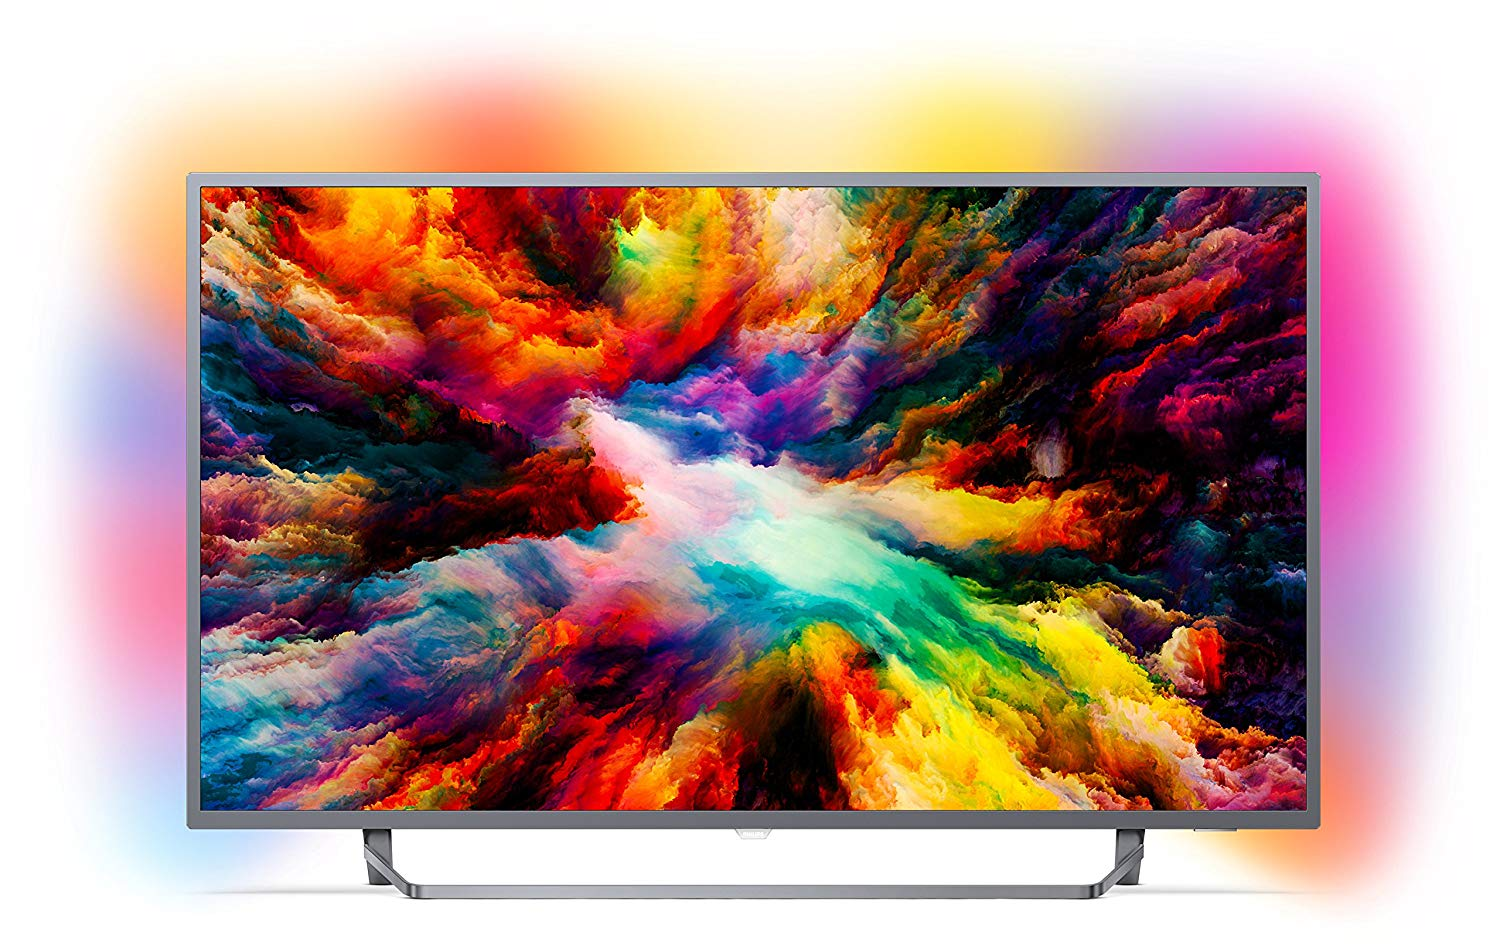 Philips 50PUS7303/12 50-Inch 4K Ultra HD Android Smart TV with HDR Plus and Ambilight 3-sided